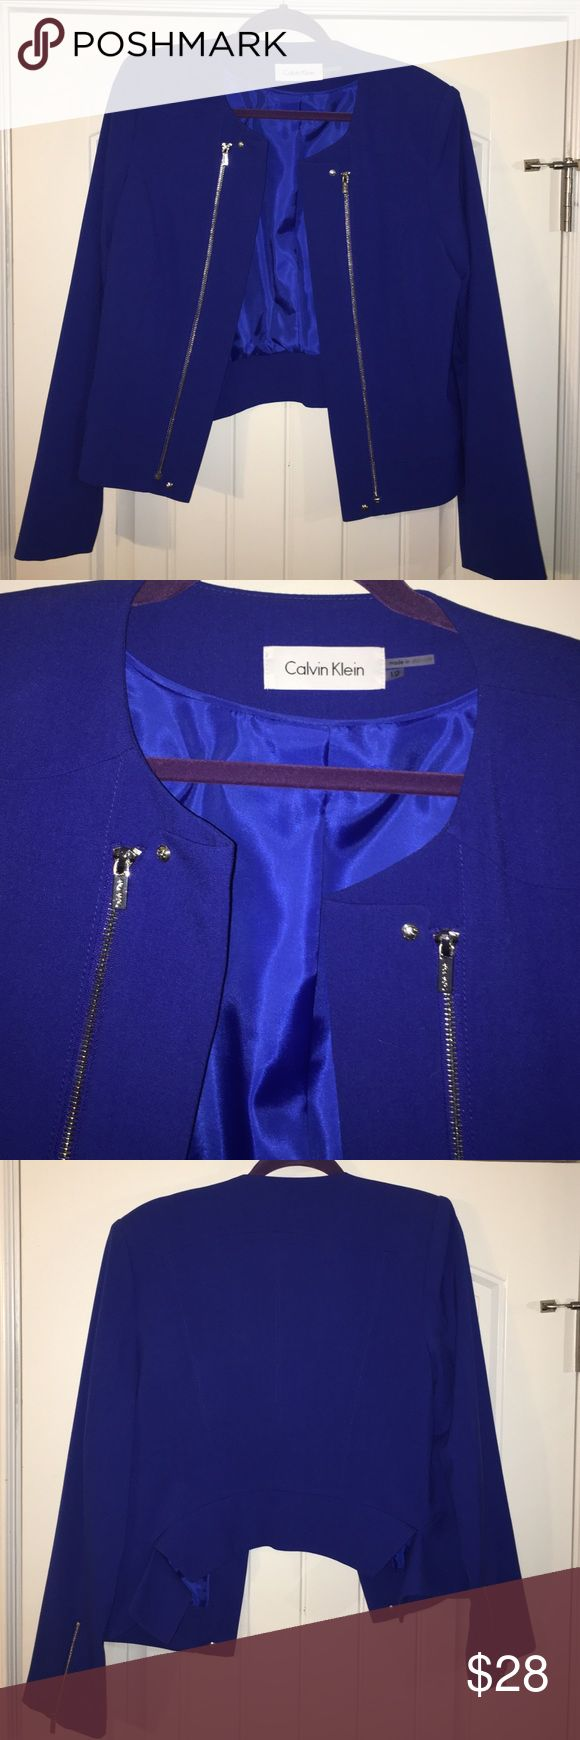 NWOT Calvin Klein Royal Blue Blazer Jacket sz 12/L NWOT Calvin Klein Royal Blue Blazer Jacket sz 12/L. Never worn or used. Beautiful blue with silver Zip accent in front and at wrist. Bundle and save!! Calvin Klein Jackets & Coats Blazers